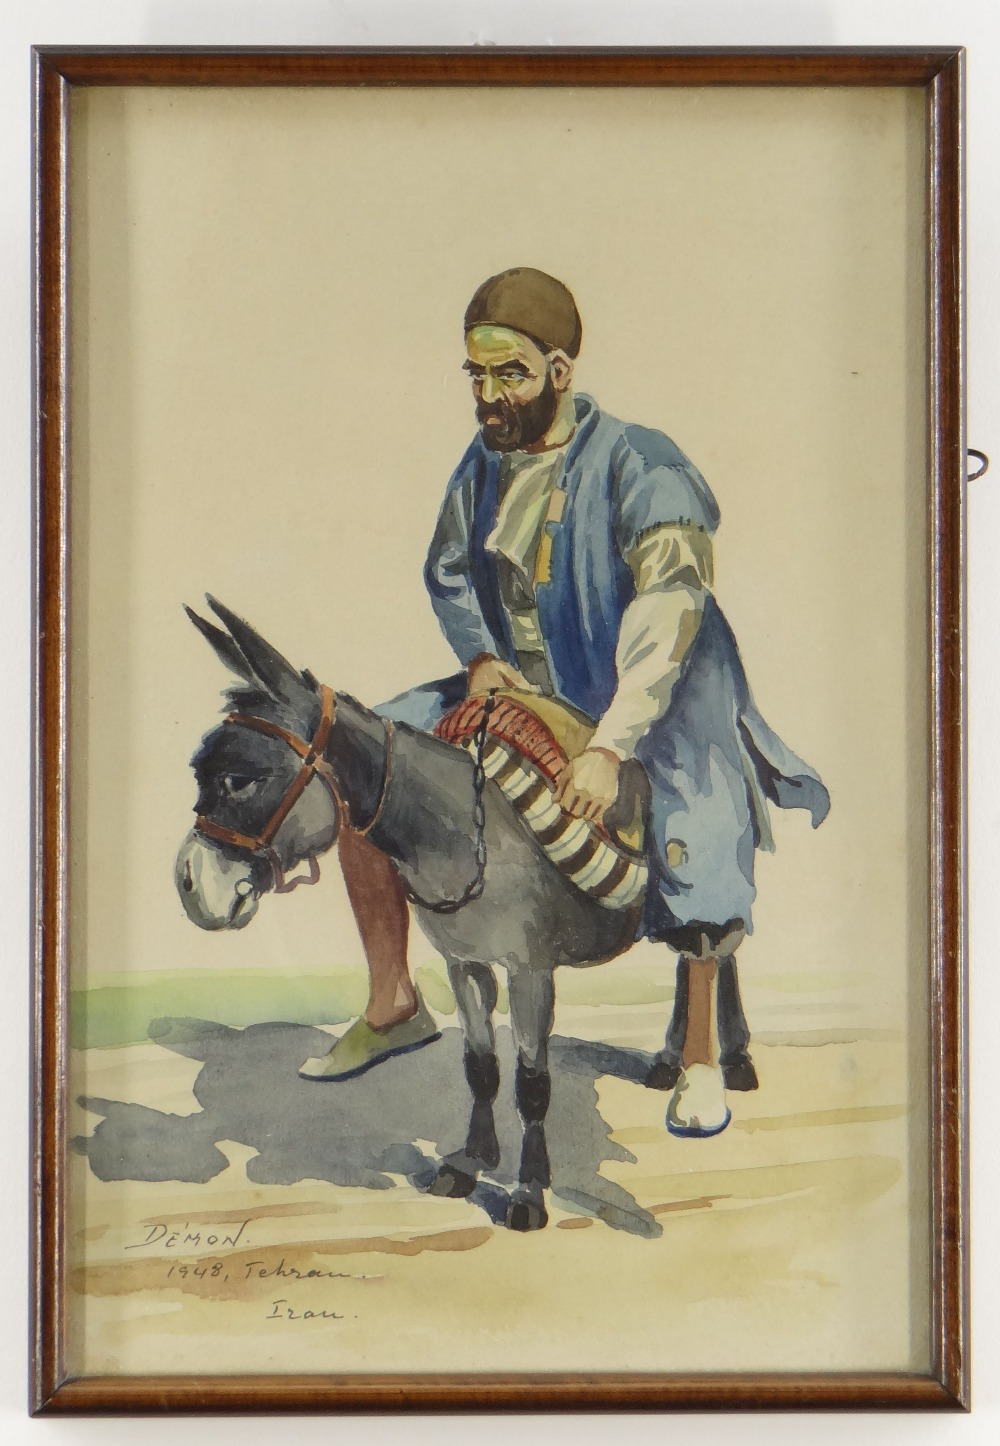 DEMON STUDIO (IRAN) watercolours - four depicting artisans including carpet seller, all signed and - Image 2 of 5